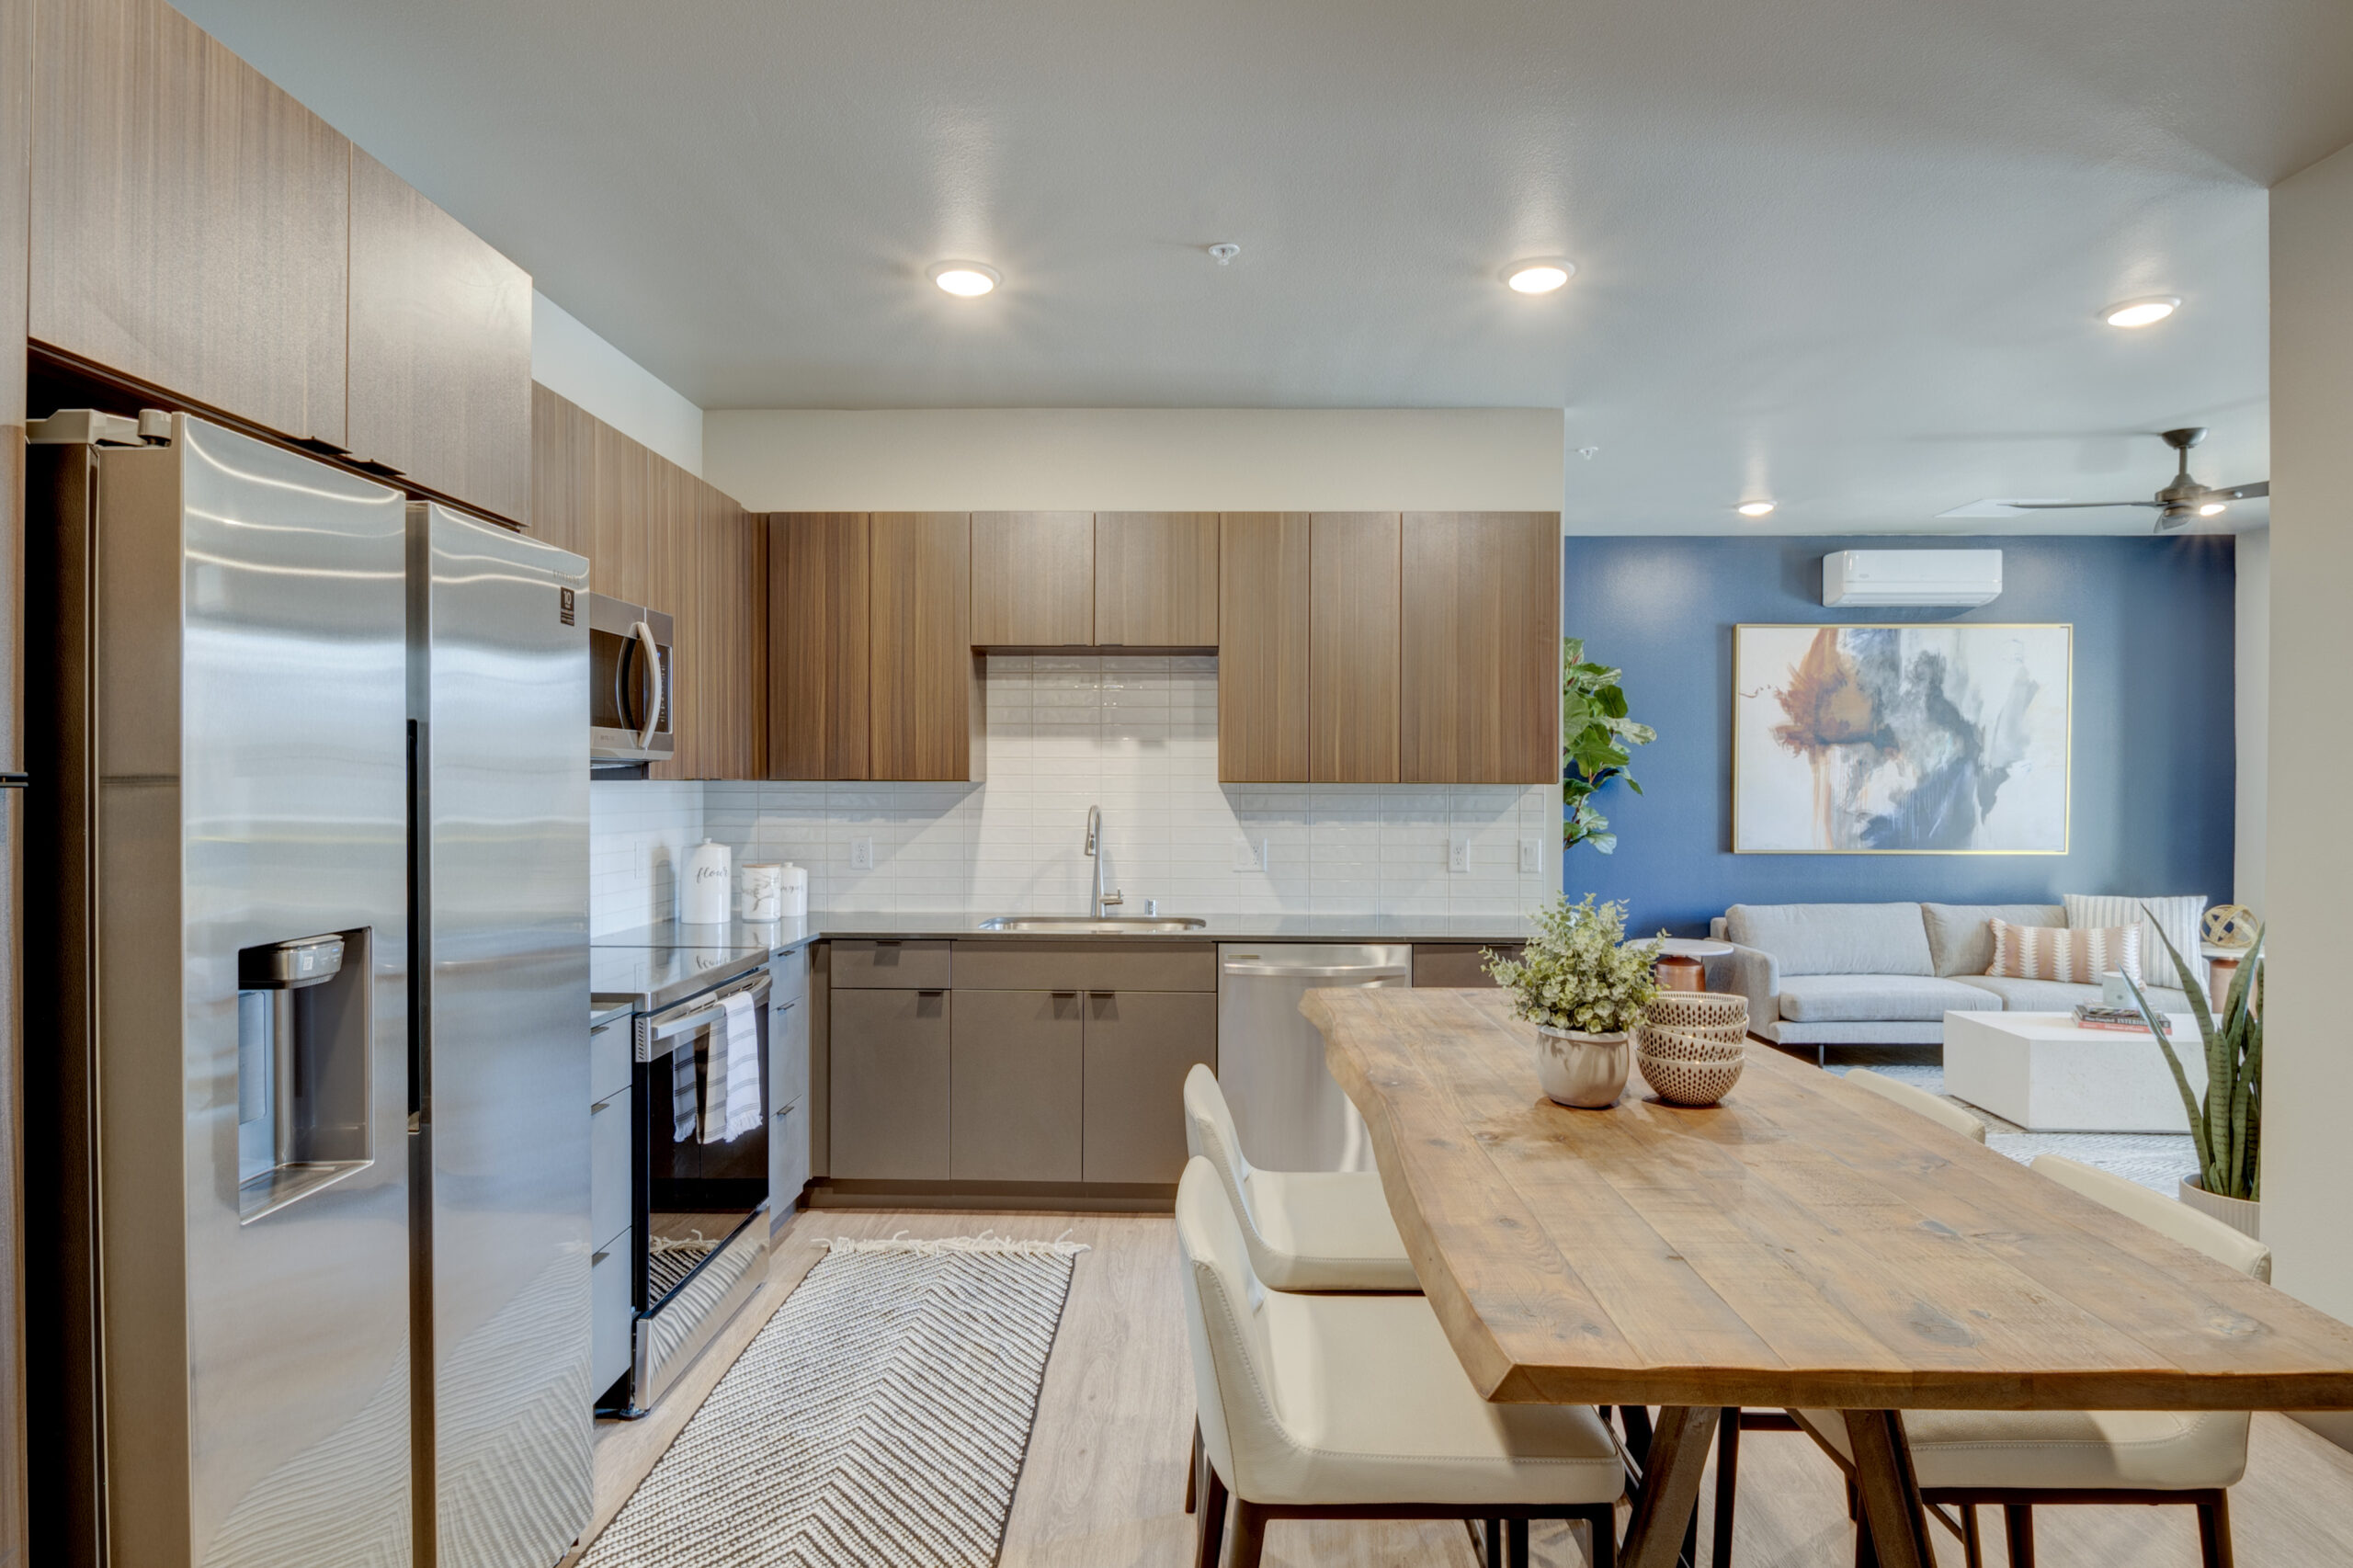 Kitchen and dining space with wood floor and cabinets, stainless steel appliances and large live edge wood table with chairs.